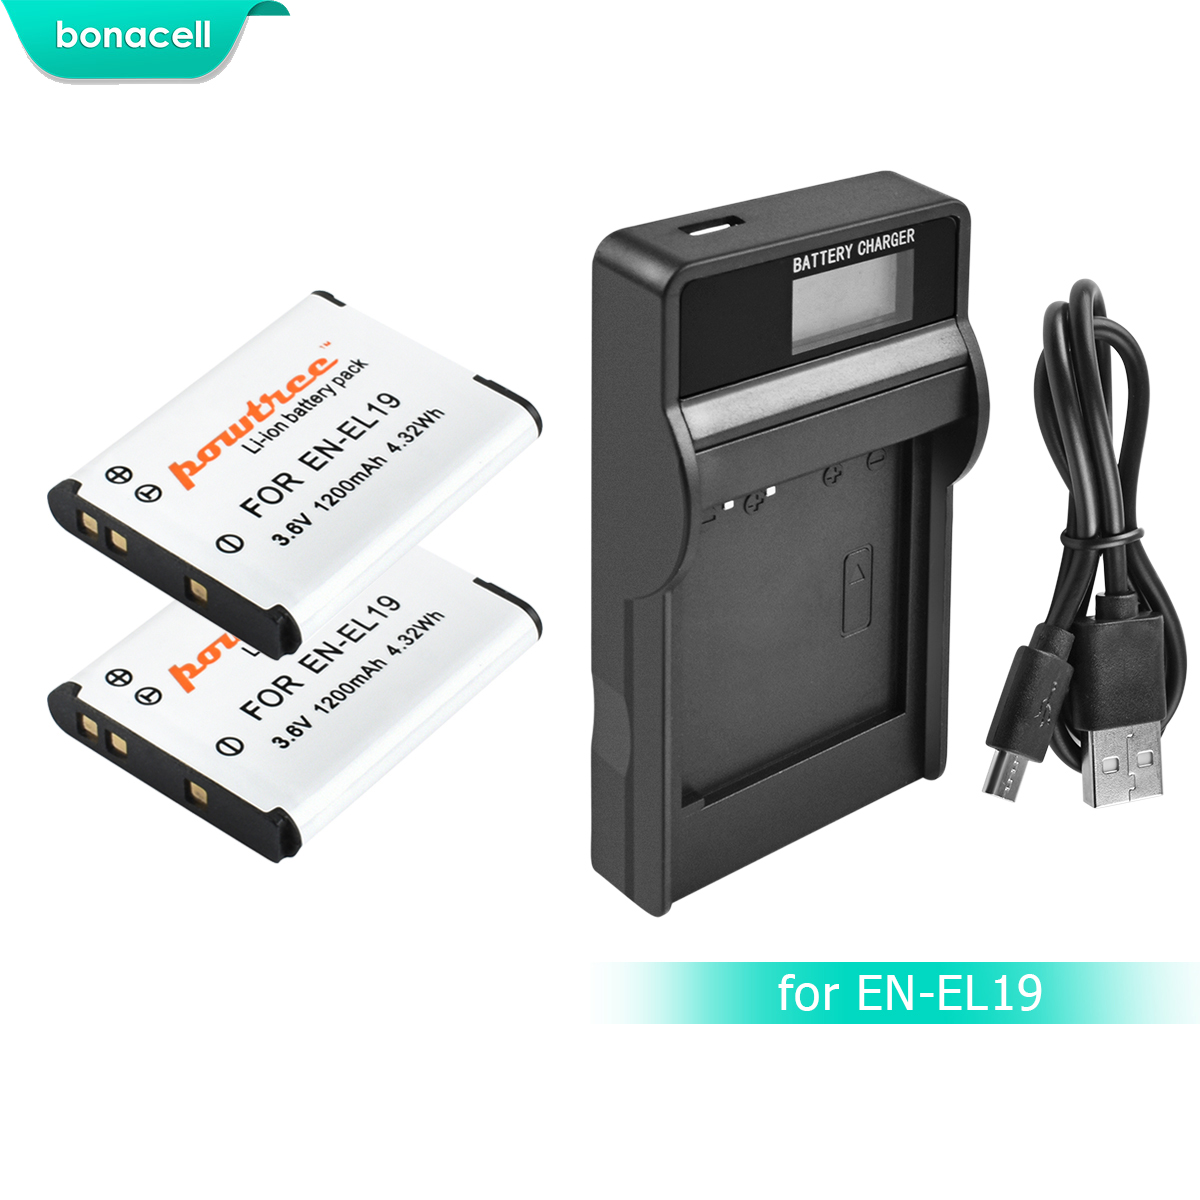 top 8 most popular coolpix s33 battery charger brands and